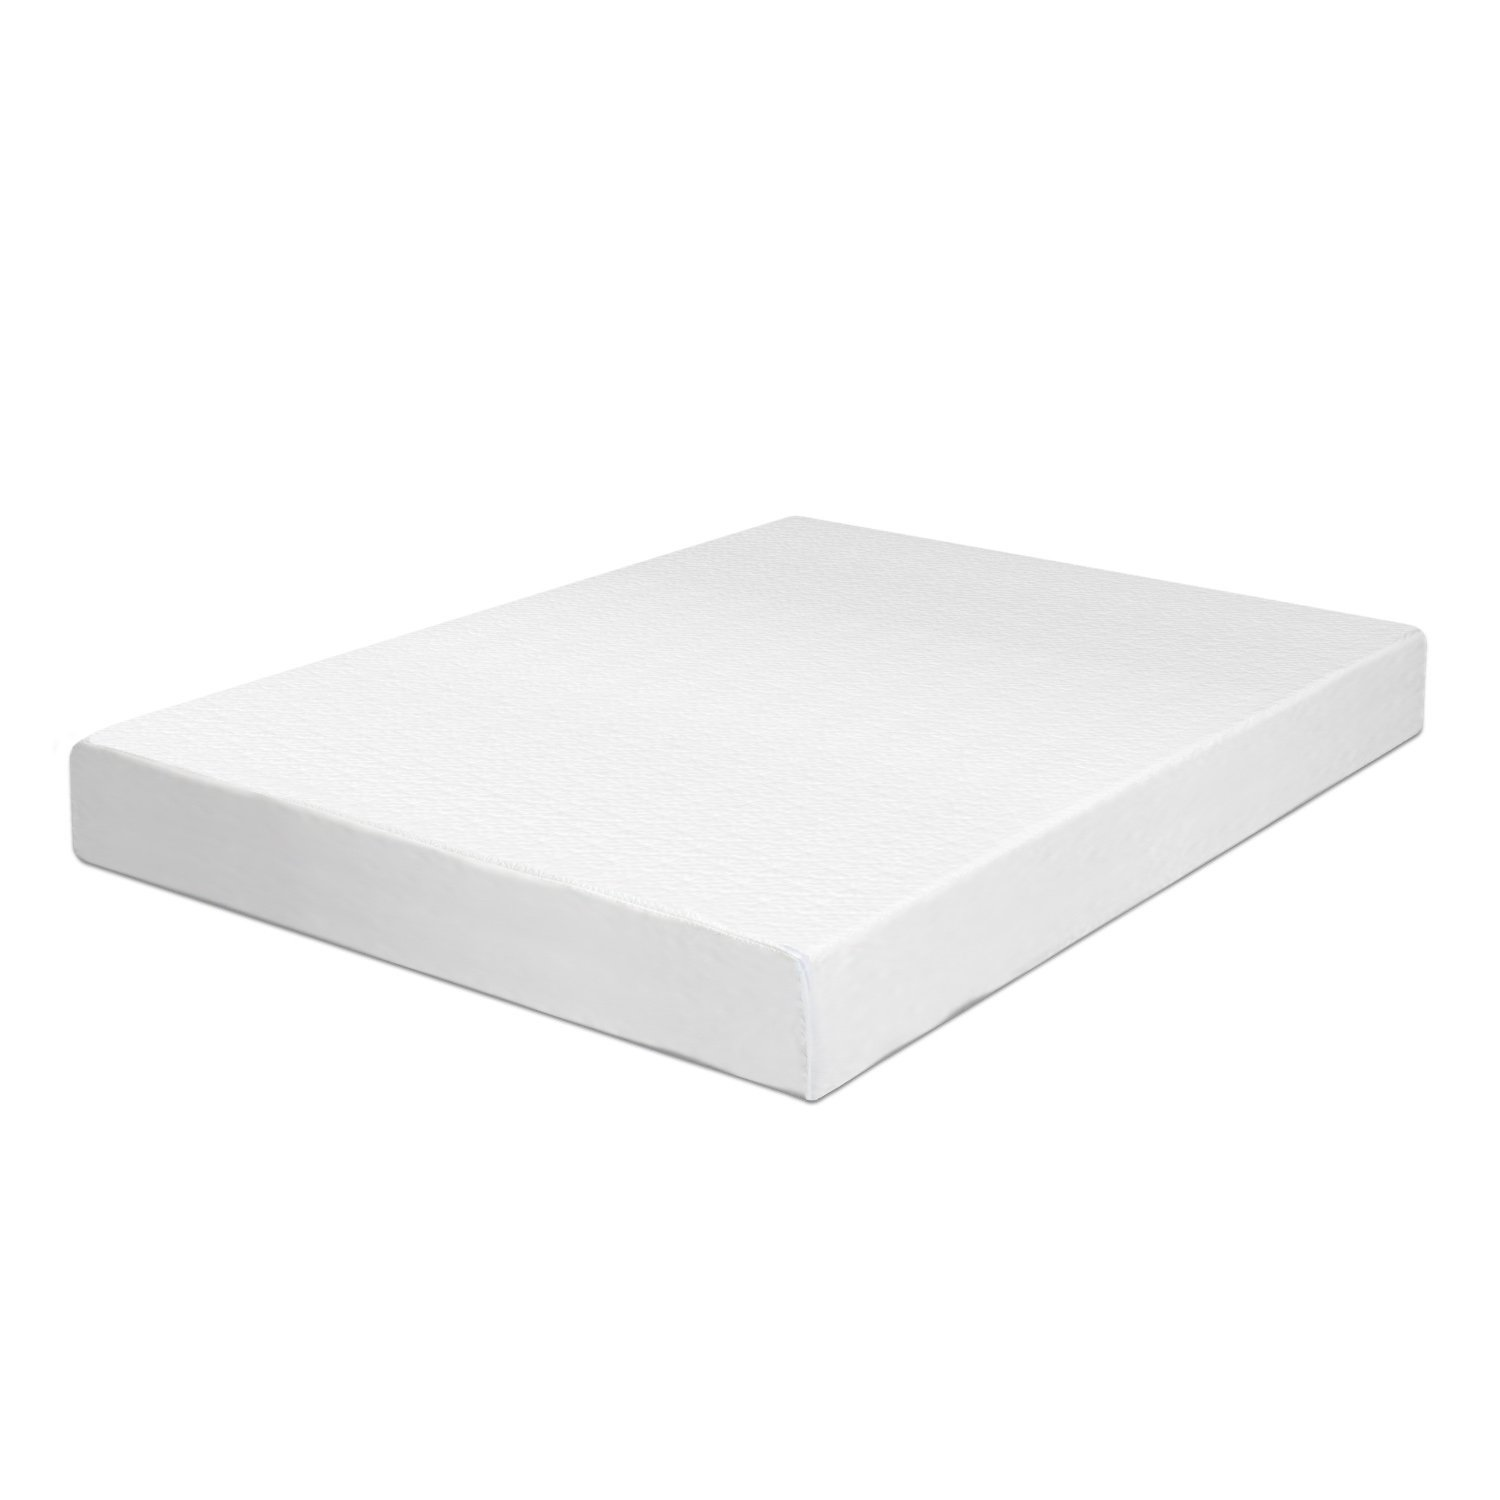 euro mattresses memory size full firm foam product loftworks medium top quilted with garden mattress home inch